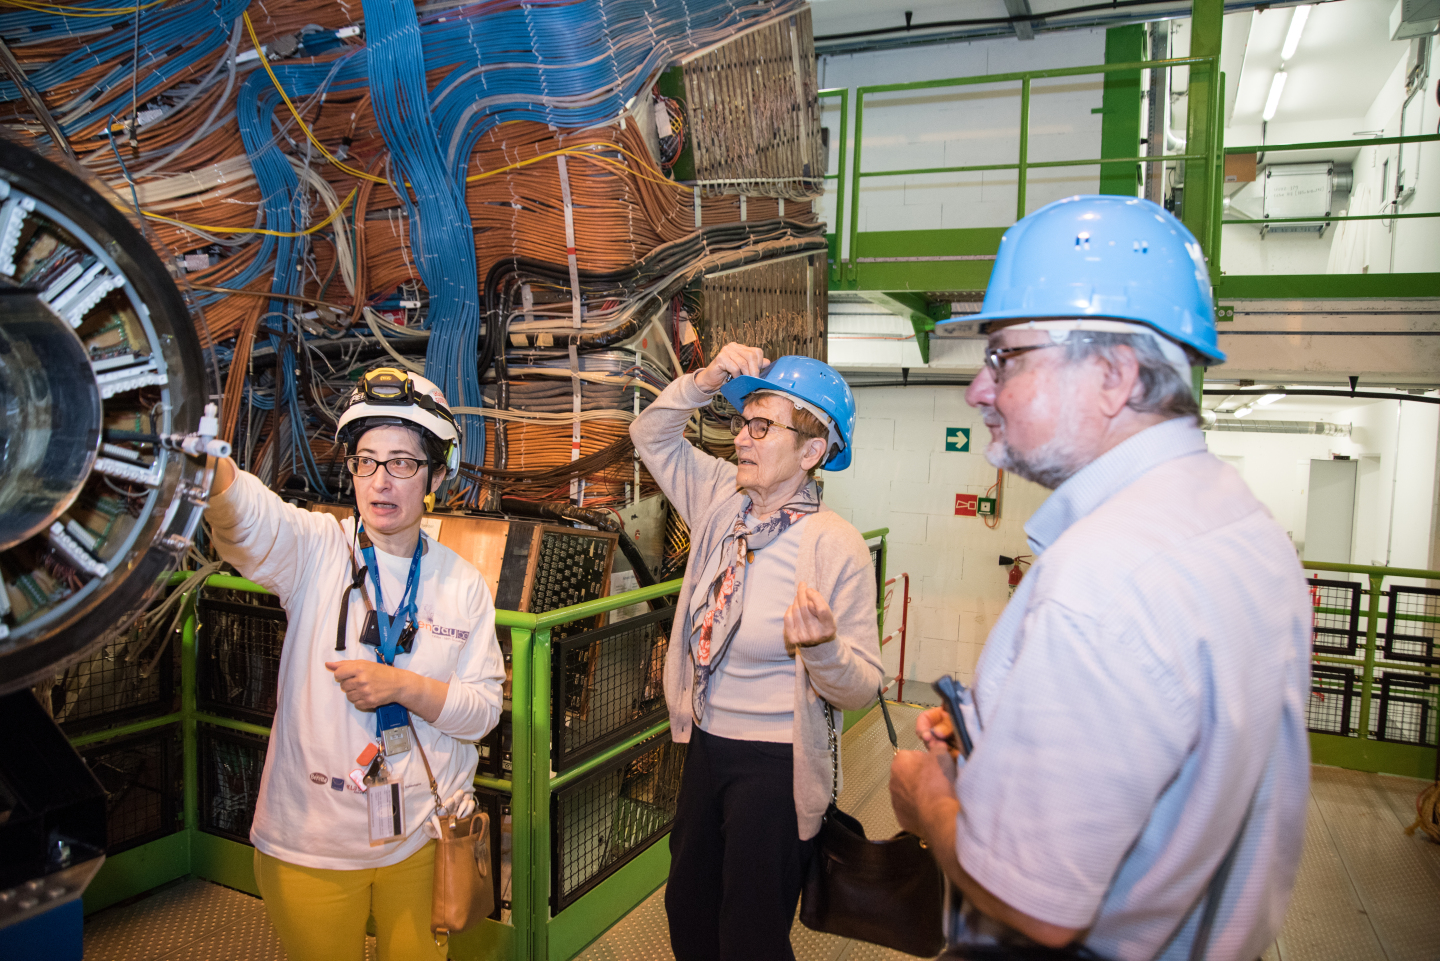 VIP visit,Marie Curie,Personalities and History of CERN